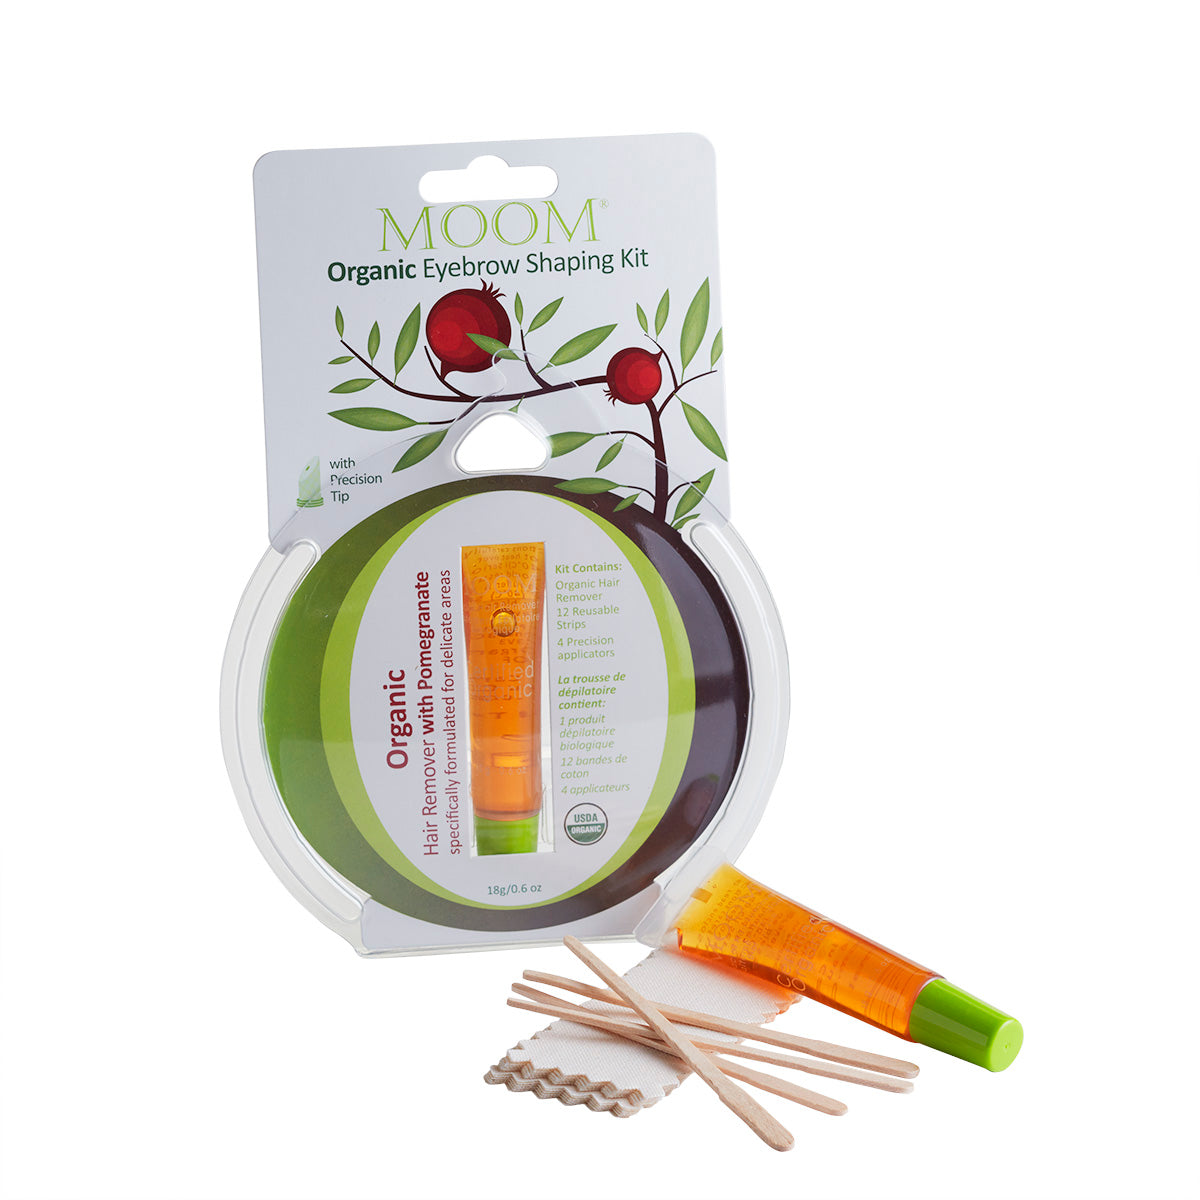 MOOM Organic Eyebrow Shaping Kit with Pomegranate